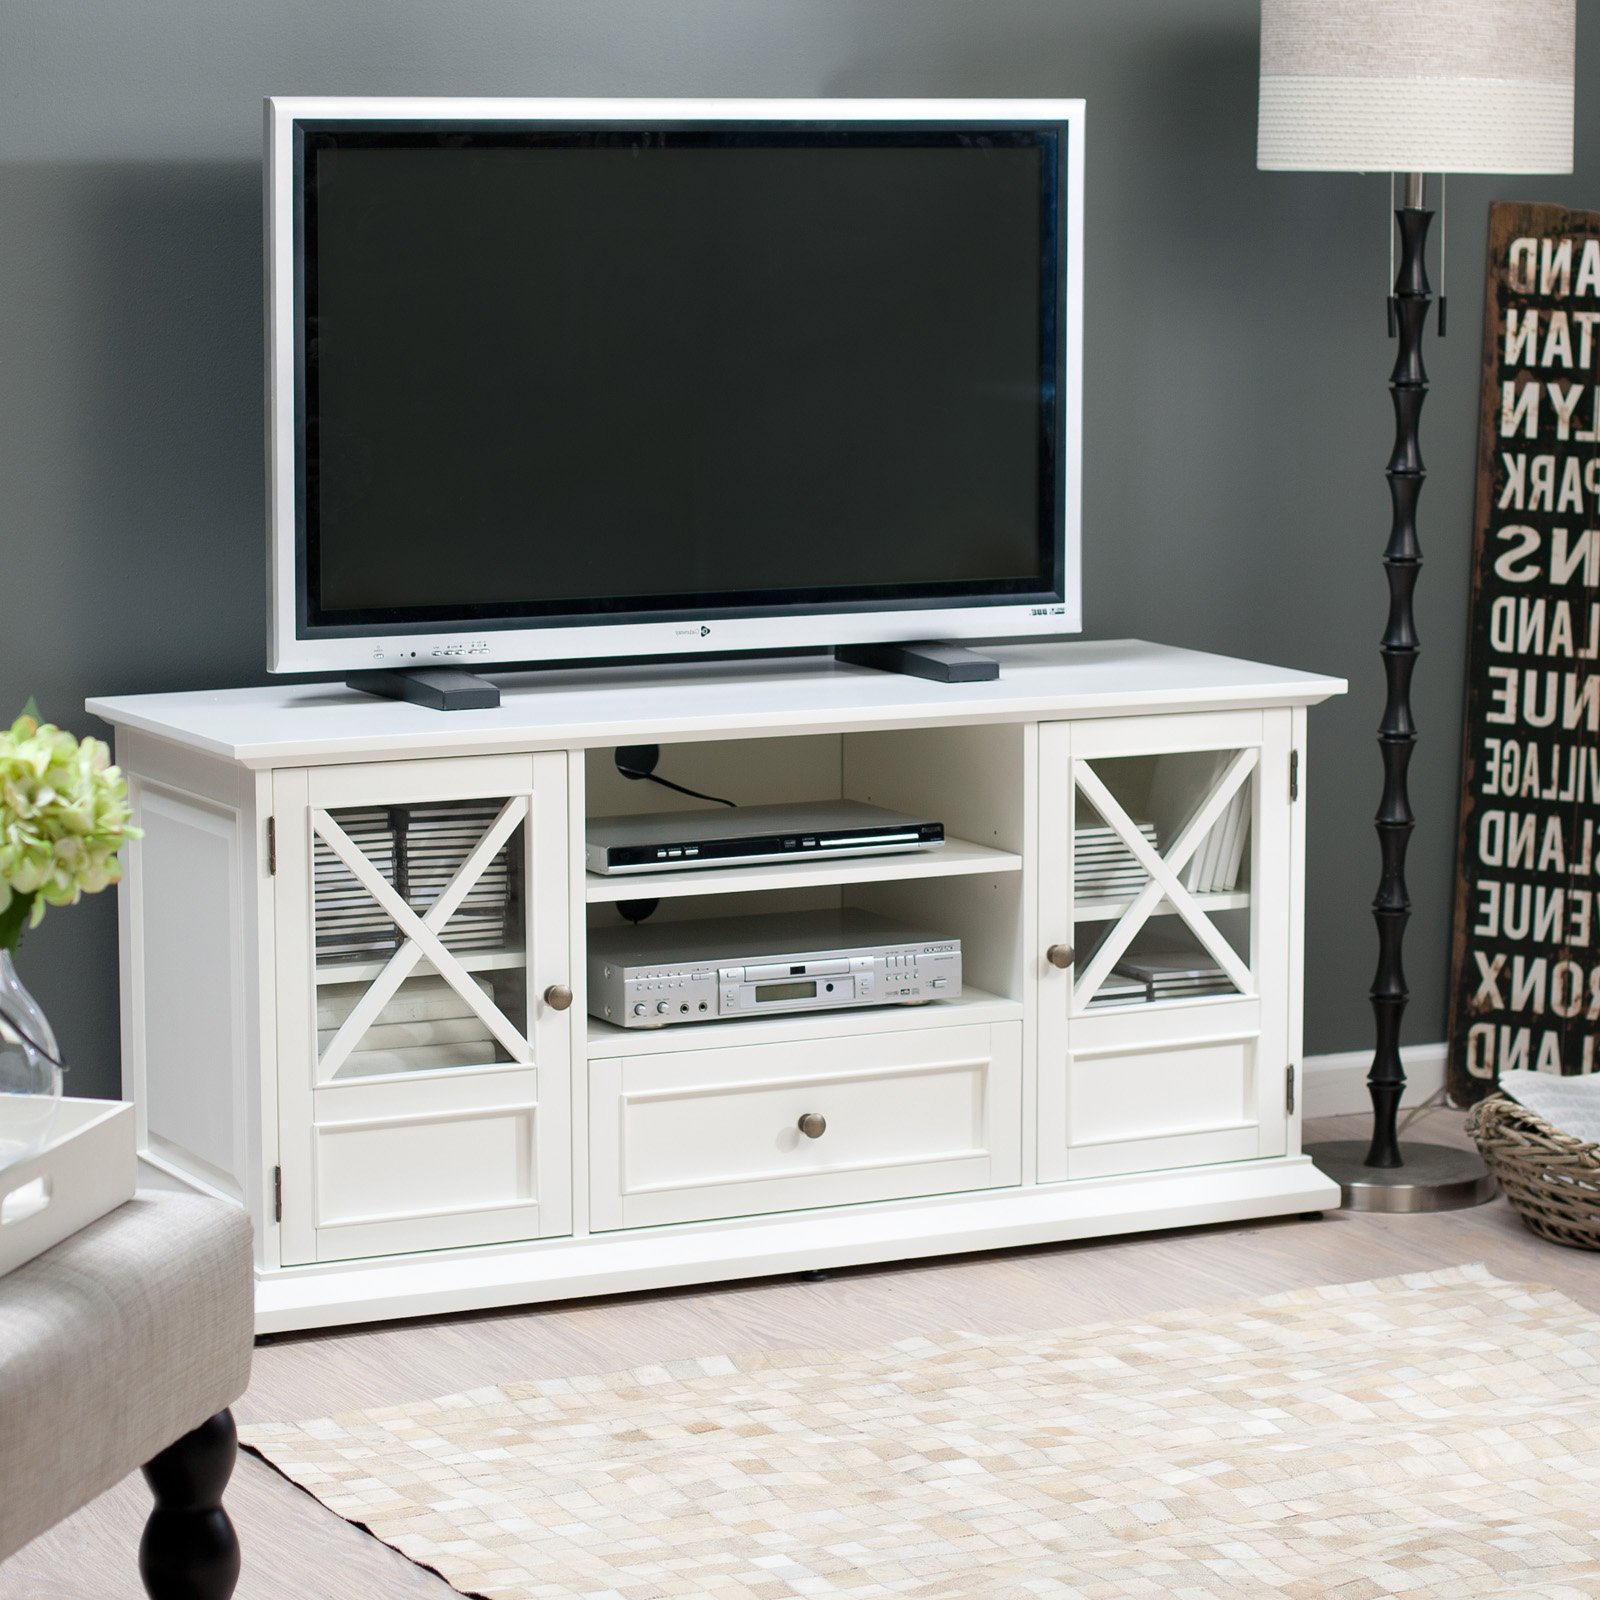 Belham Living Hampton Tv Stand – White – Walmart Within Famous White Tv Stands (View 1 of 20)